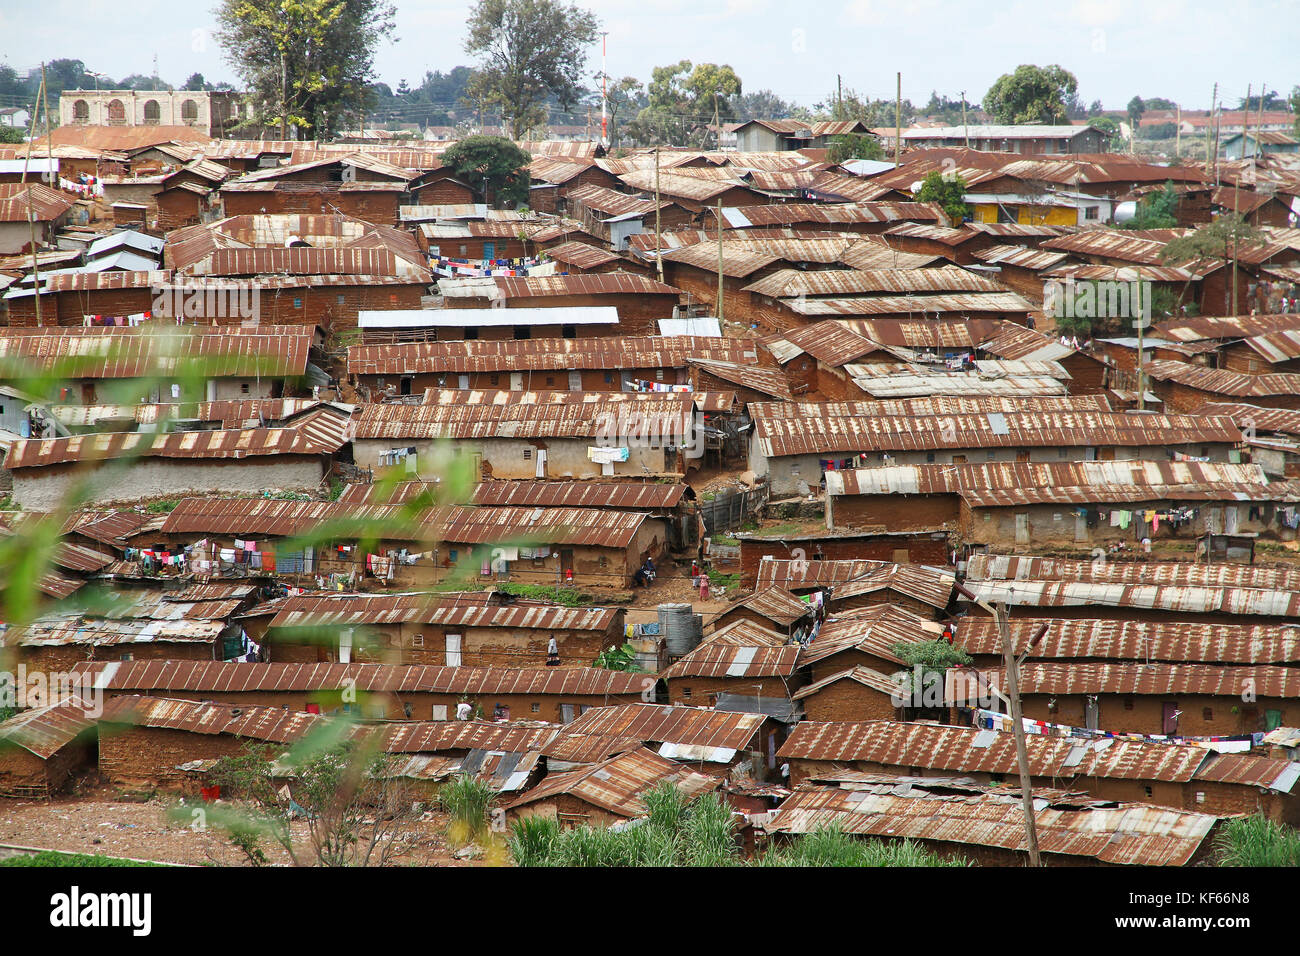 Living in the Kenya Slum Aerias - The rusted roofs of Kibera Slum, Mairobi Kenya - Stock Image